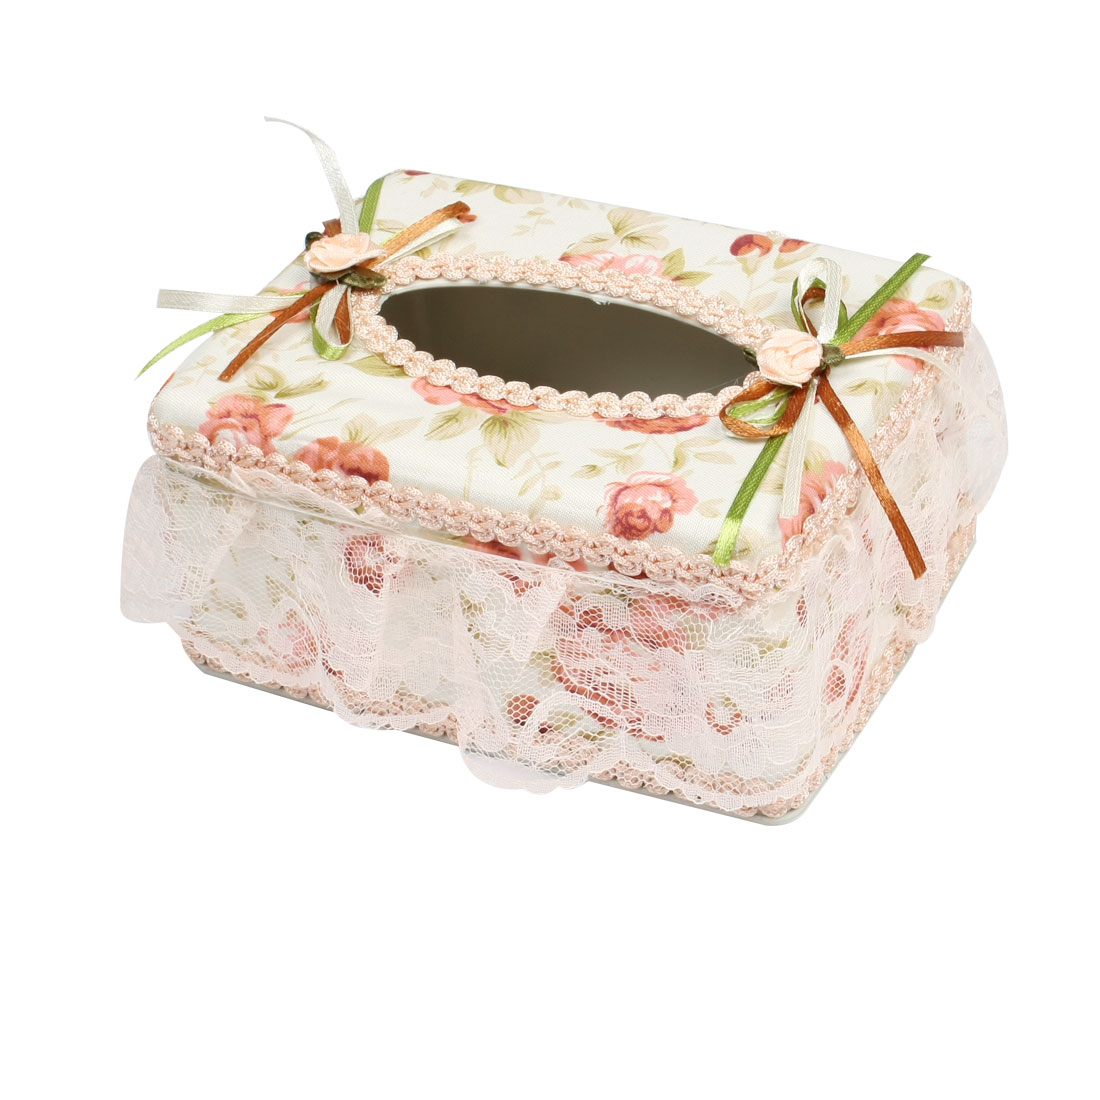 Household Flowers Decor Plastic Tissue Paper Case Holder Napkin Box Beige White